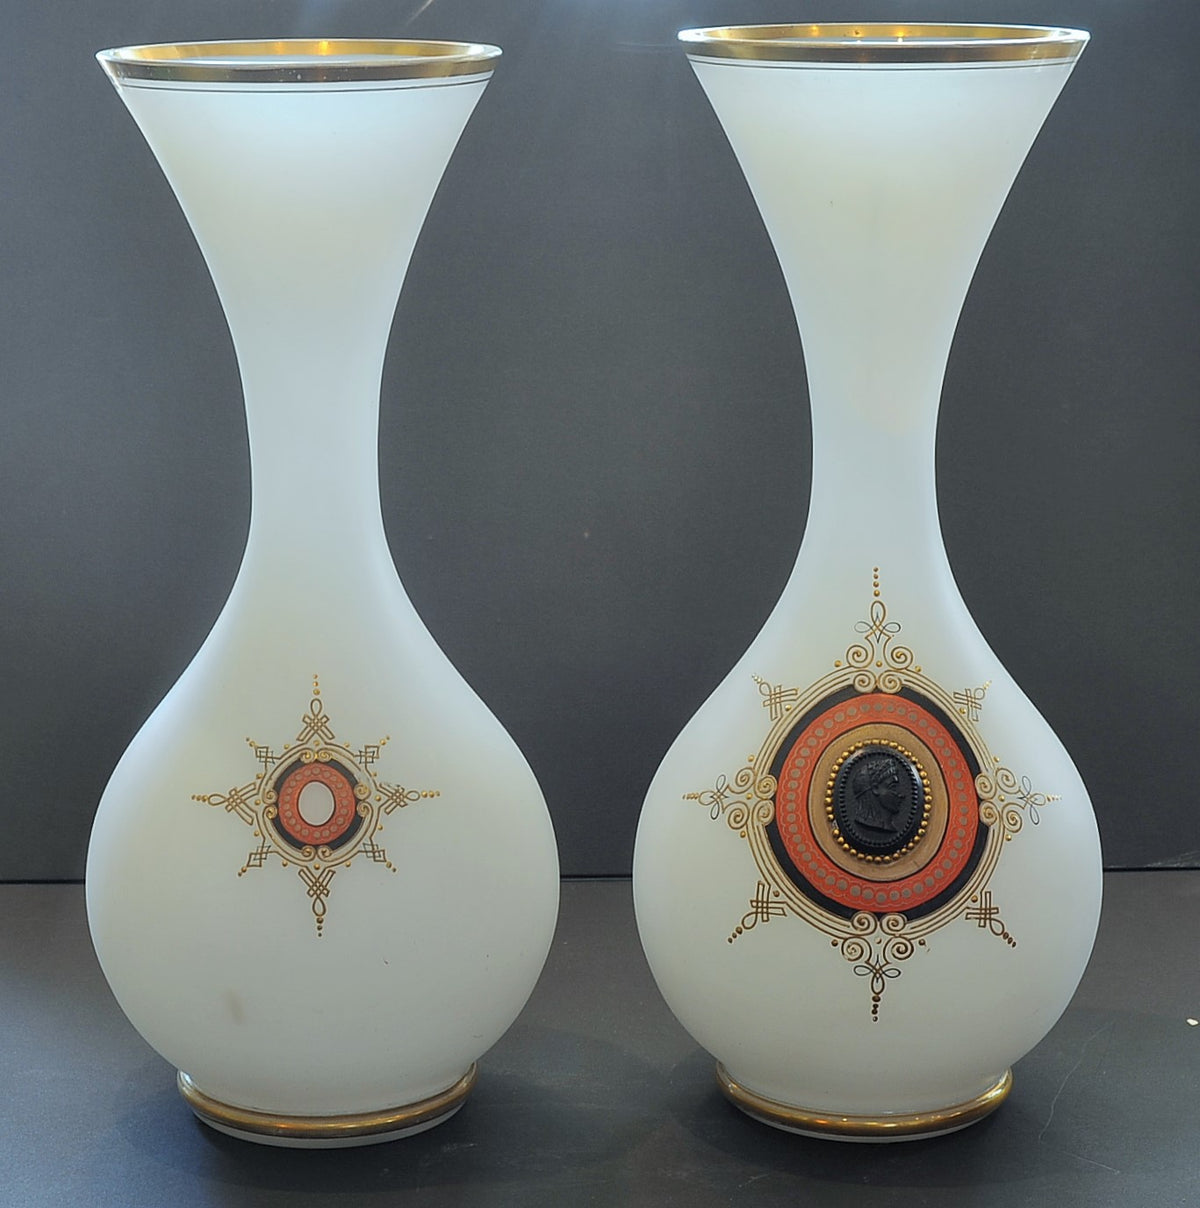 Pair of Large Bristol Glass Vases with Bronze Medallion. British